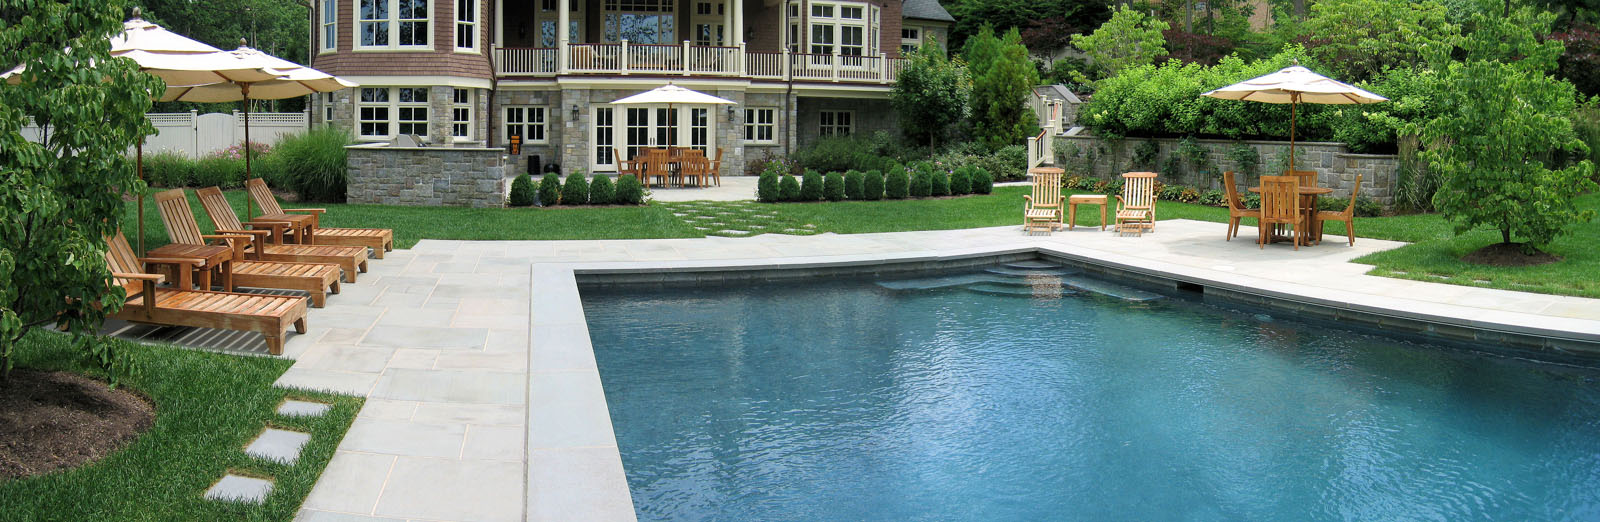 before and after landscape pictures, after, nj swimming pool design